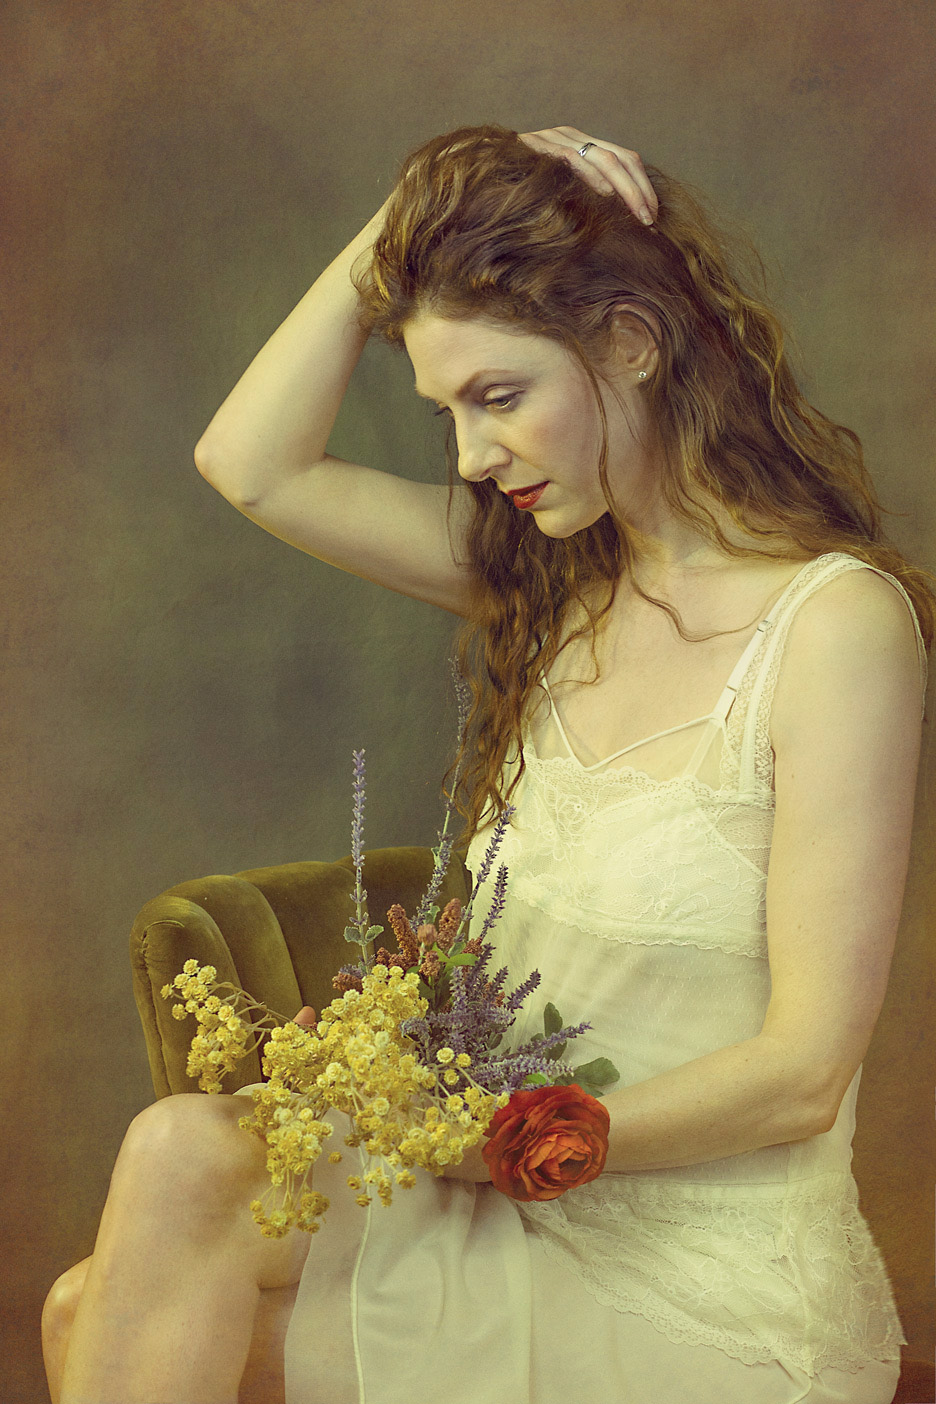 sera-with-flowers-2-3-for-web-s.jpg